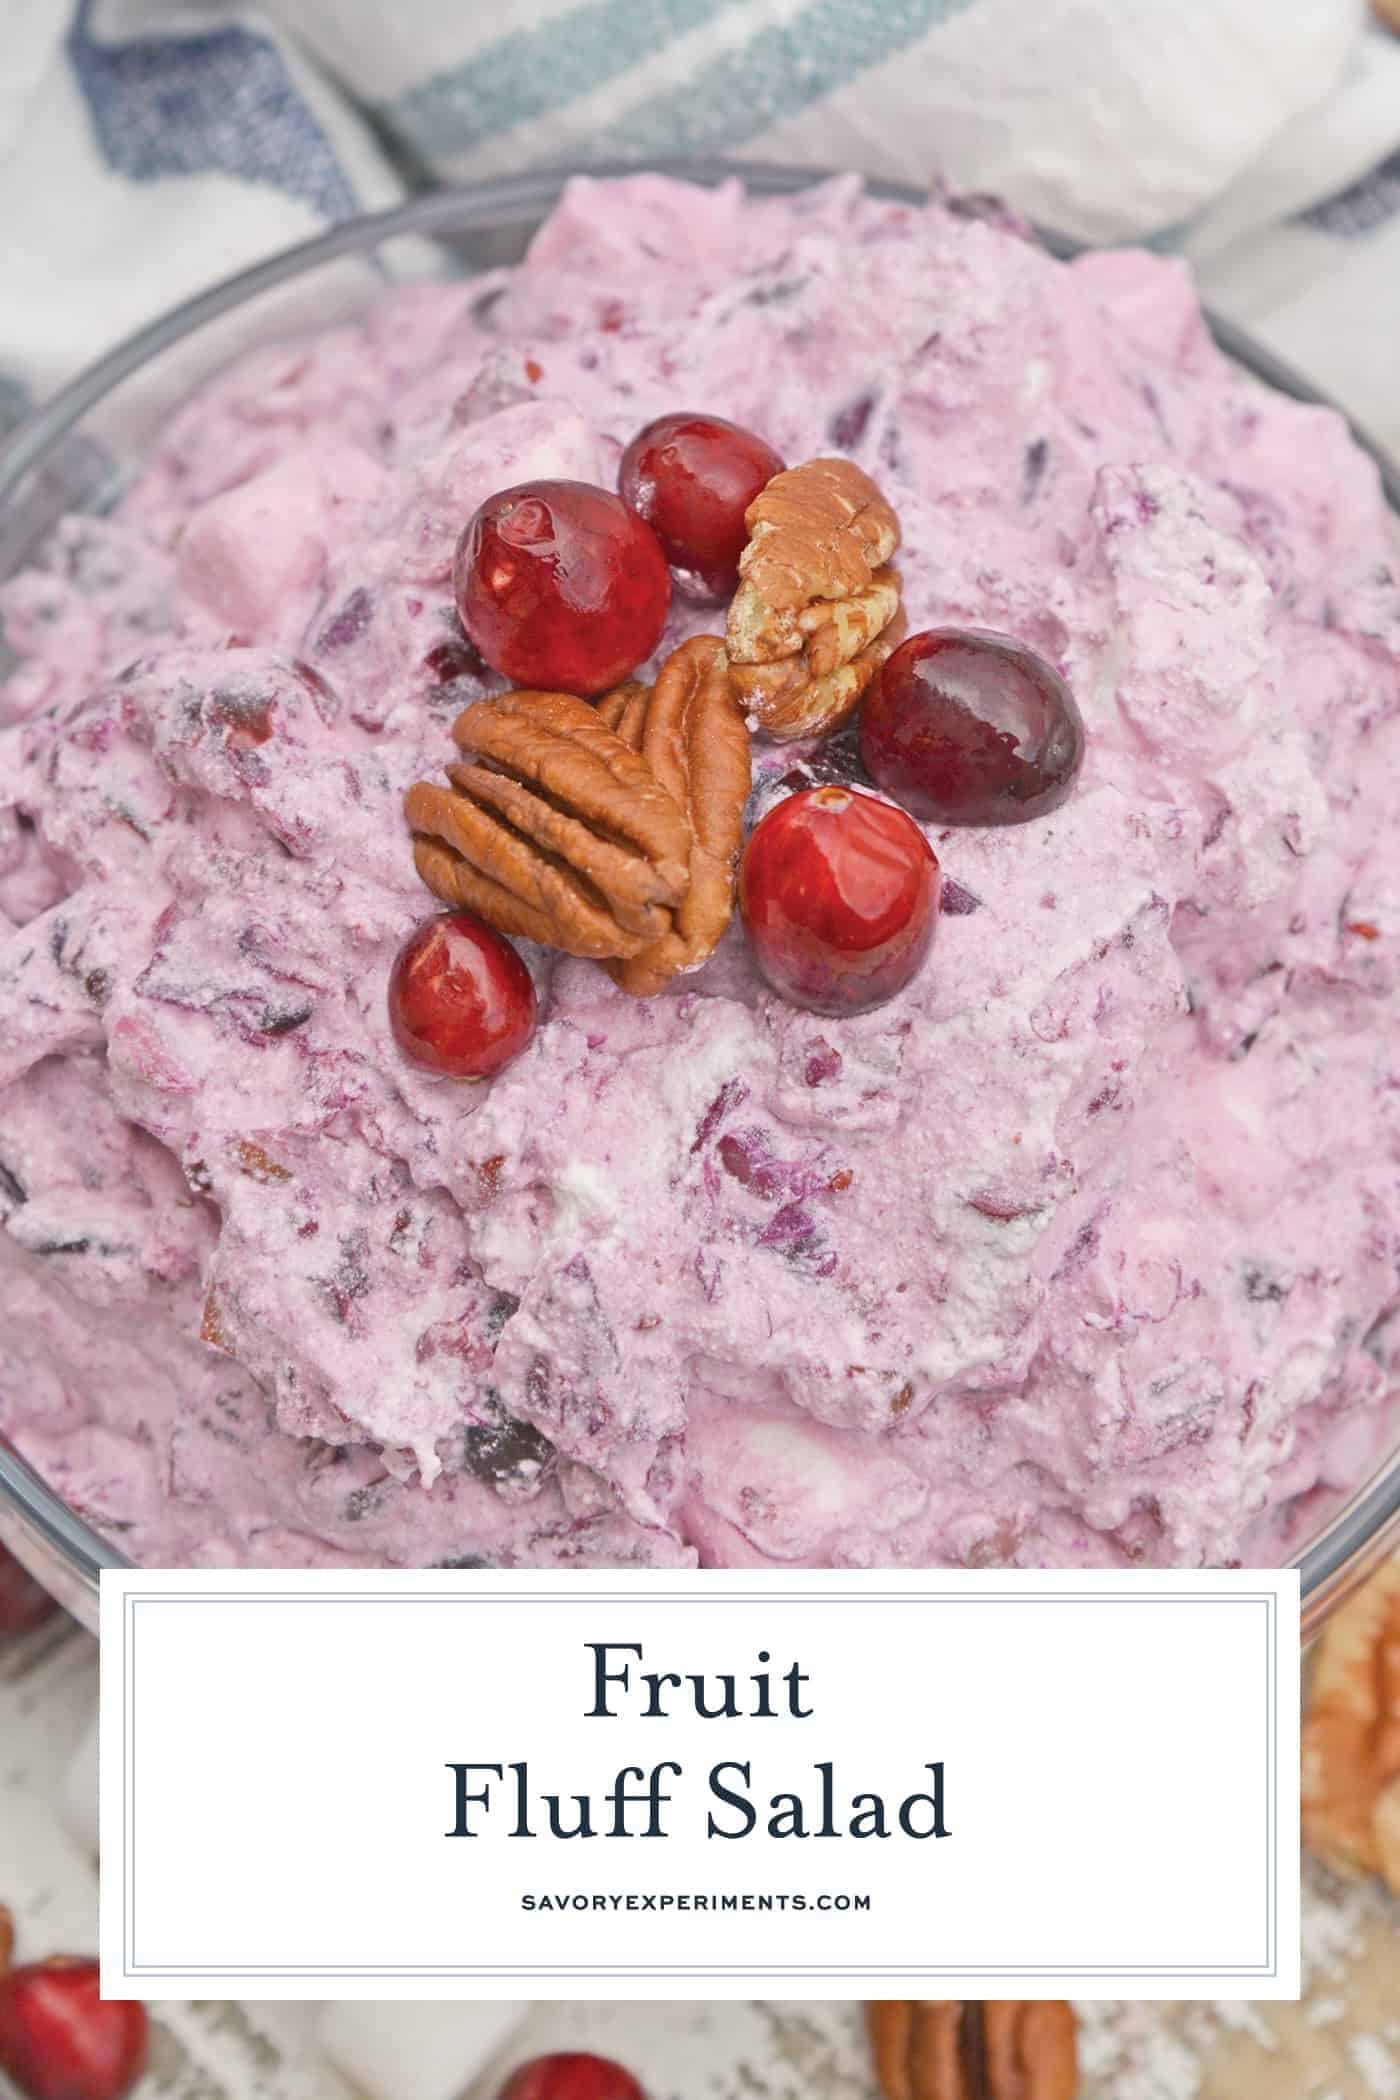 Fruit Fluff Salad is a classic side dish for the holidays combining Cherry Fluff, Pineapple Fluff and Cranberry Fluff Salad into one! #fruitfluffsalad #fluffsaladrecipe www.savoryexperiments.com